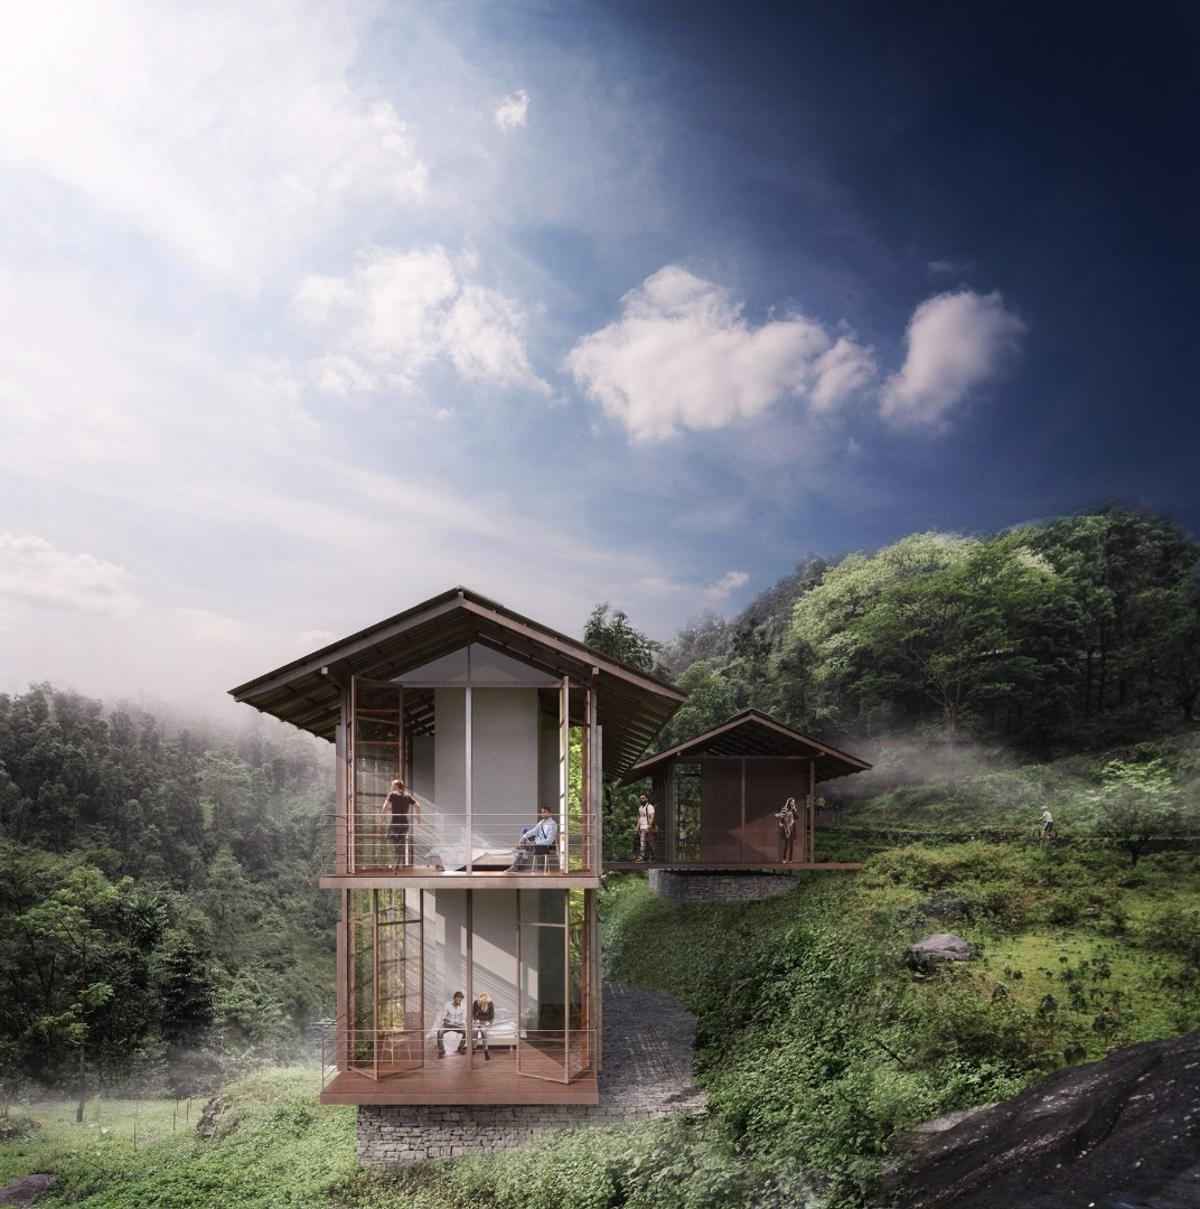 ThePankhasari Retreat willbe located in a valley in the Darjeeling region of West Bengal, India